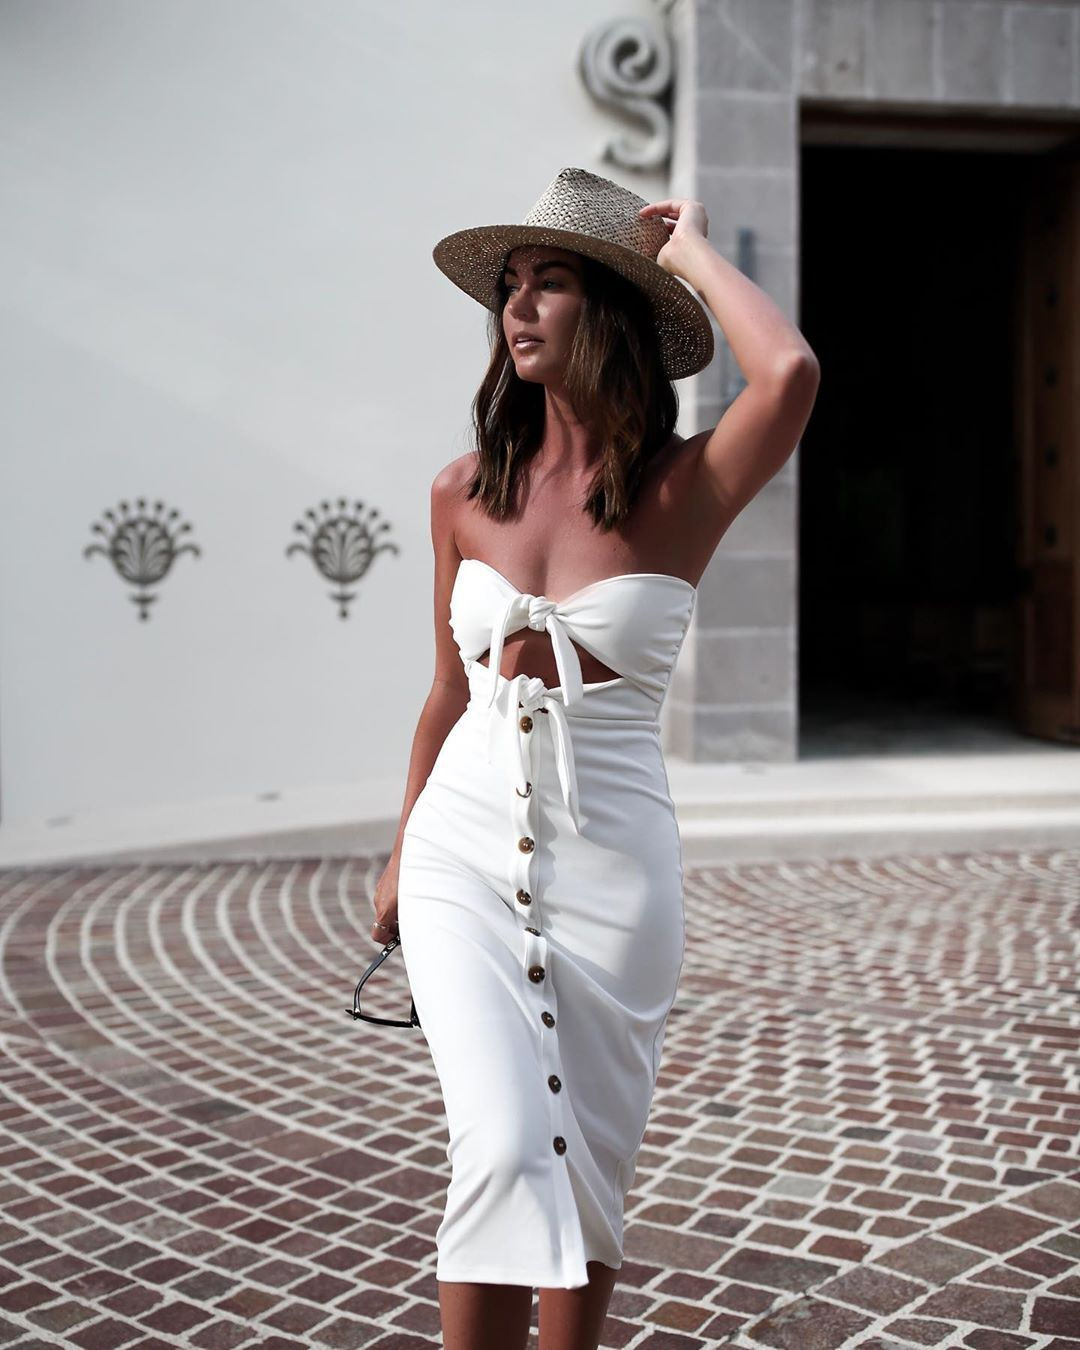 dress white dress midi dress sleeveless dress house of harlow 1960 sun hat